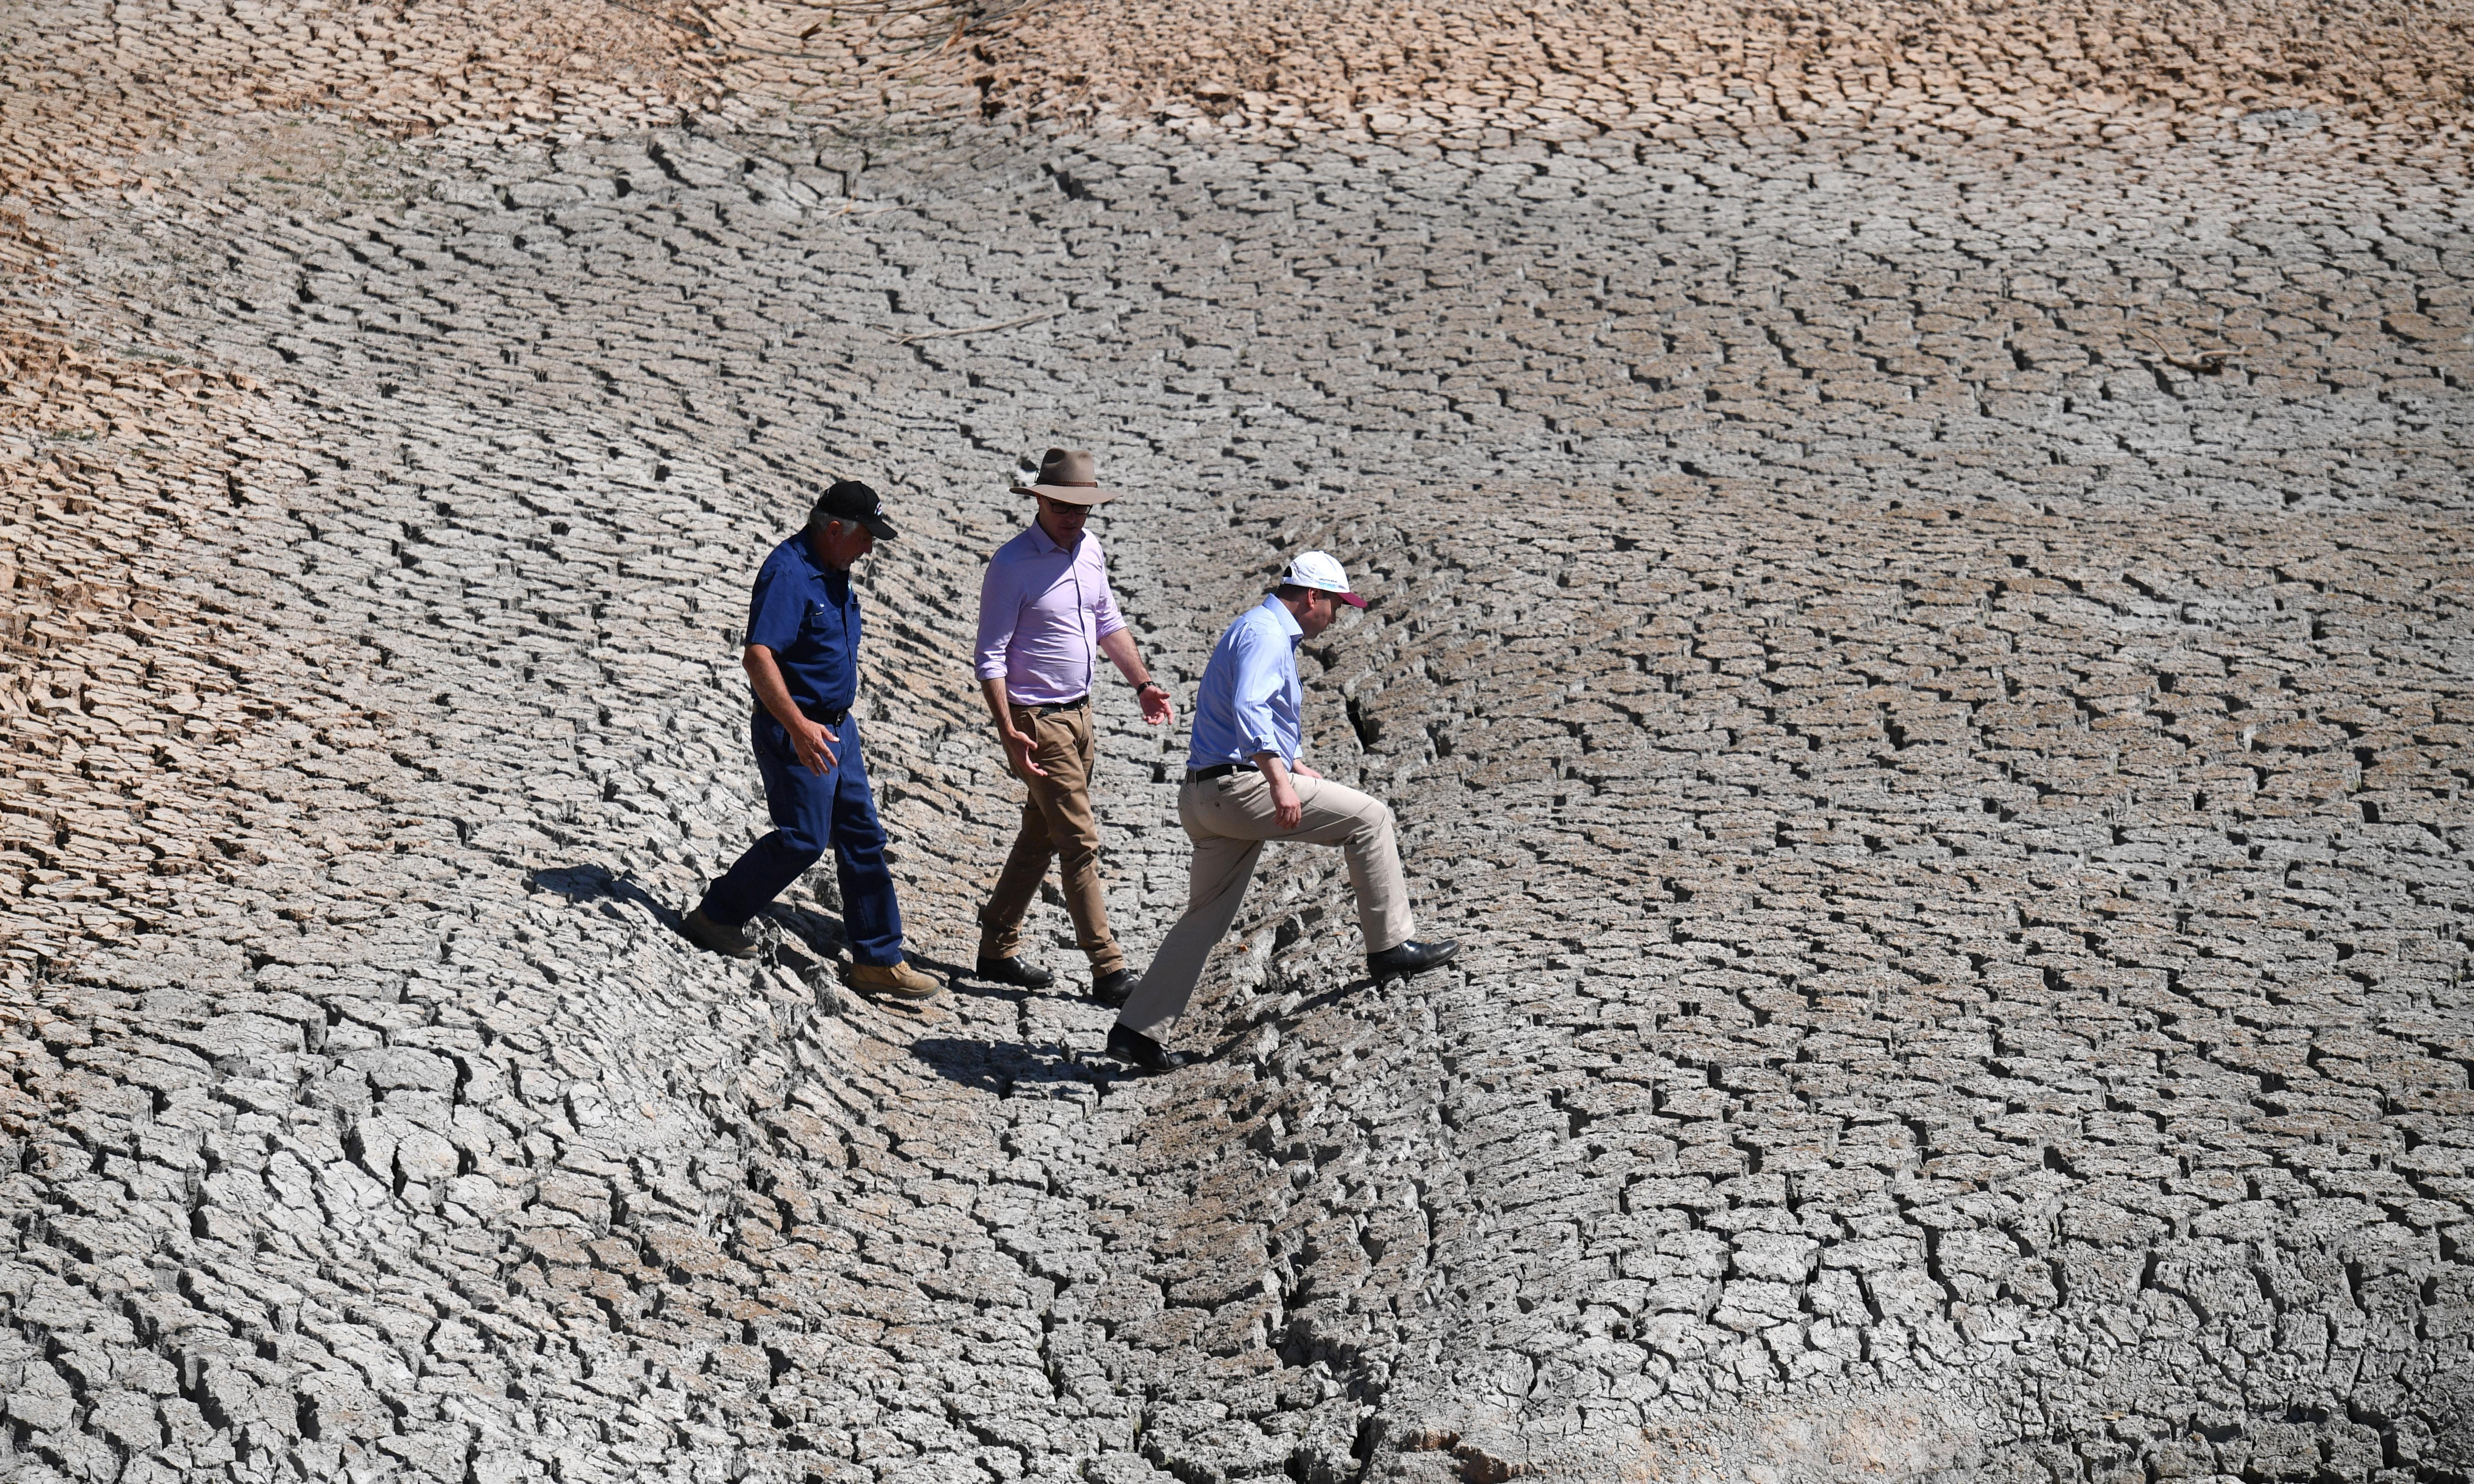 Farmers urge better preparation for 'the next drought' as Labor suggests war cabinet